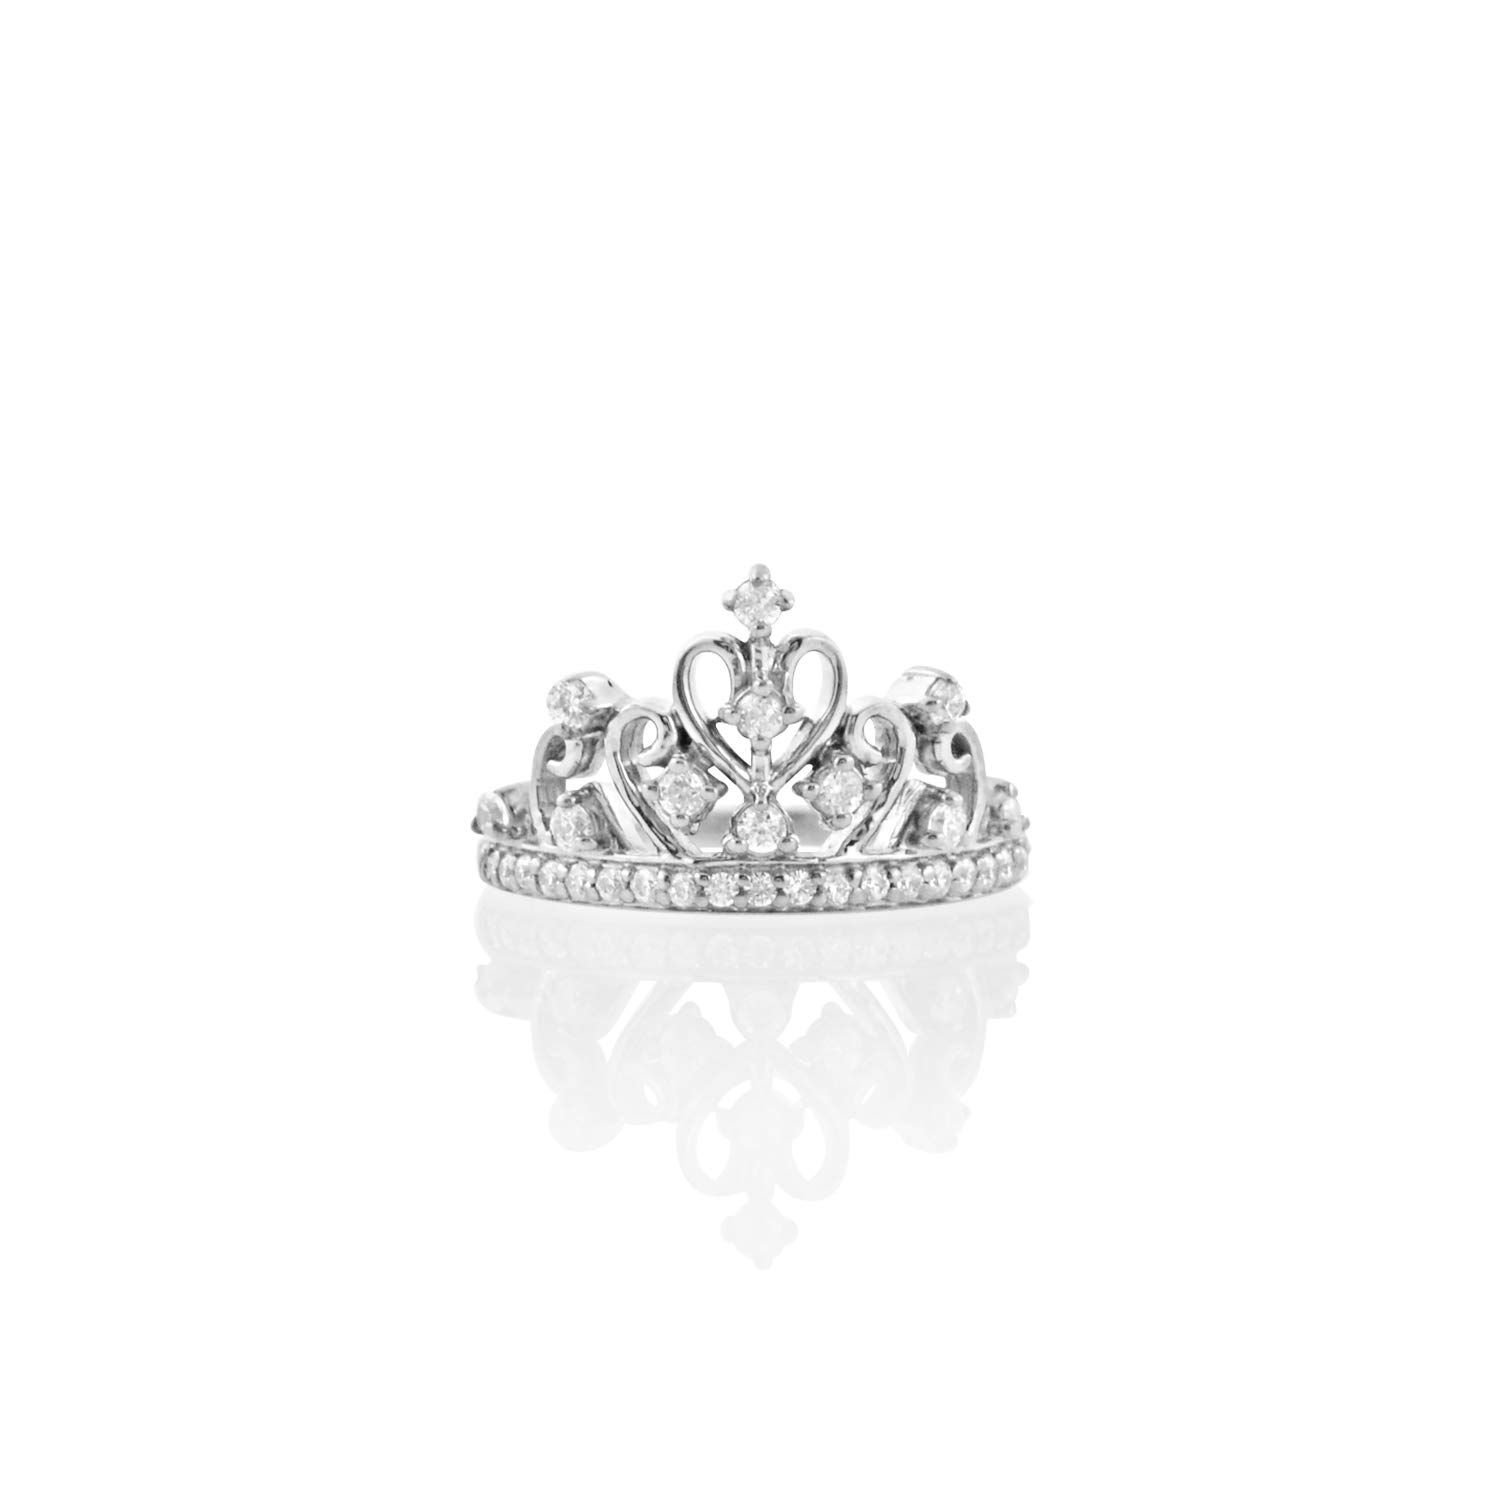 Diamond Scotch Round White Cubic Zirconia Tiara Princess Queen Crown Ring Best for Women Girls in 14k White Gold Over by Diamond Scotch (Image #2)